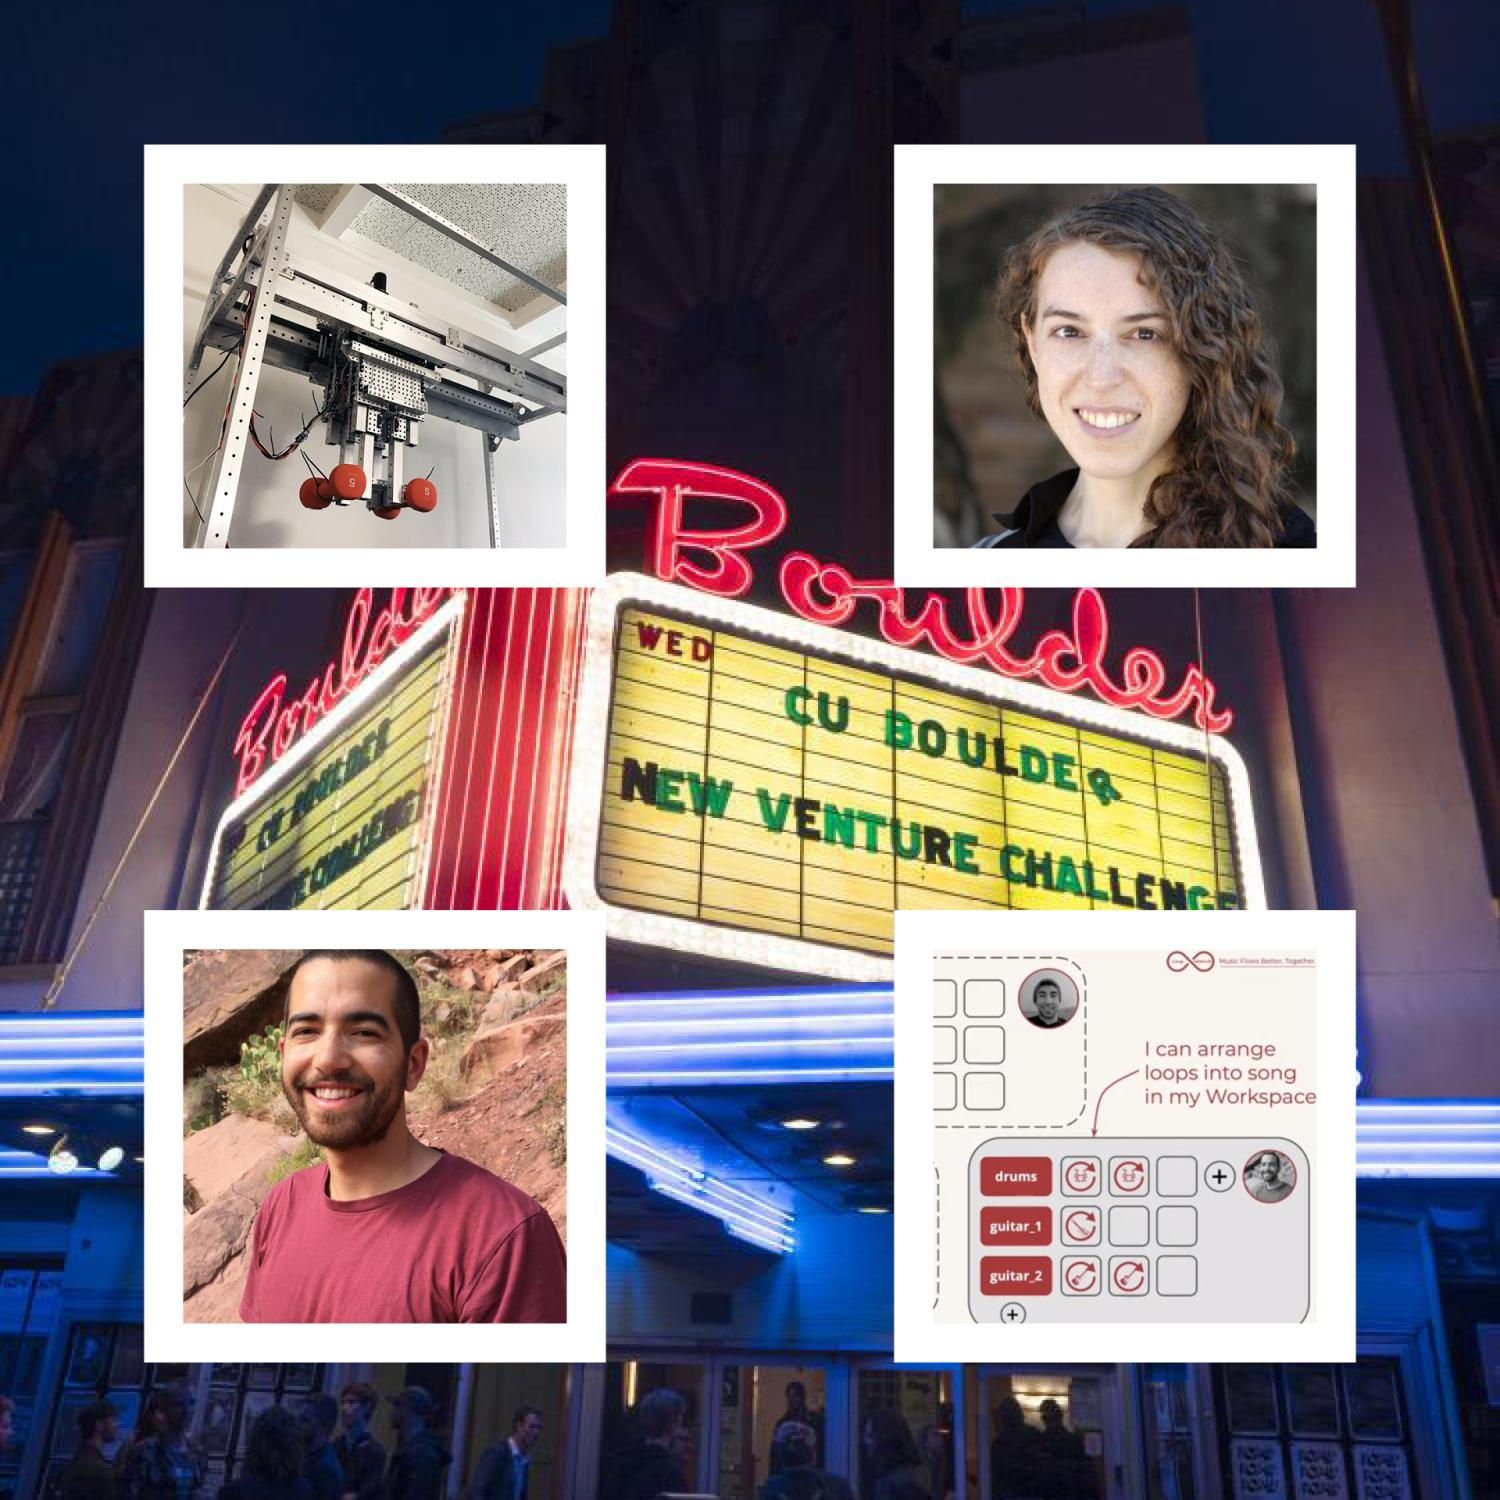 Marquee of Boulder Theater announcing the NVC finals with photos of Darren Scholes, Kailey Shara and their projects around it